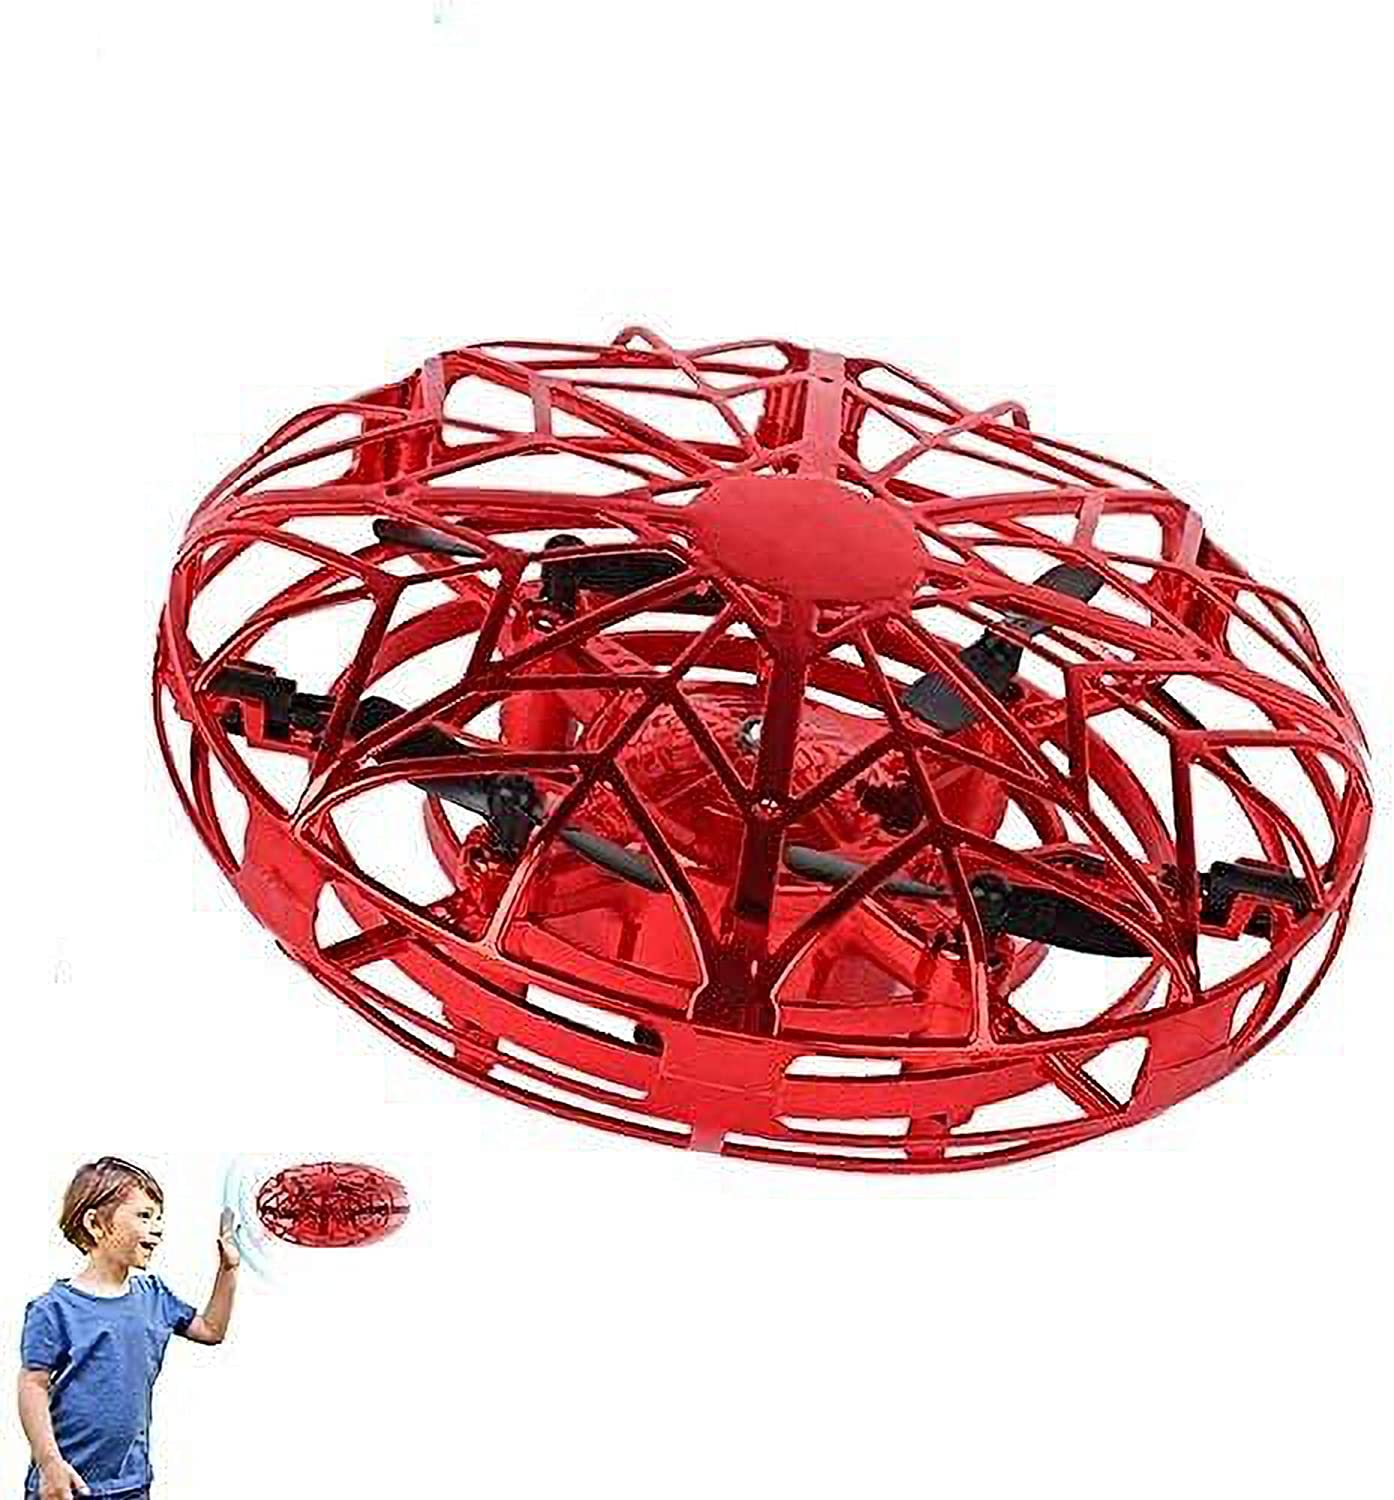 ZHC Children'S Mini Drone, Flying Toy, Hand-Controlled Flying Ball Intelligent Flying Toy with Led Lamp Beads, 3-Color Light-Emitting Interactive Toy, Rechargeable UFO Toy for Boys and Girls…